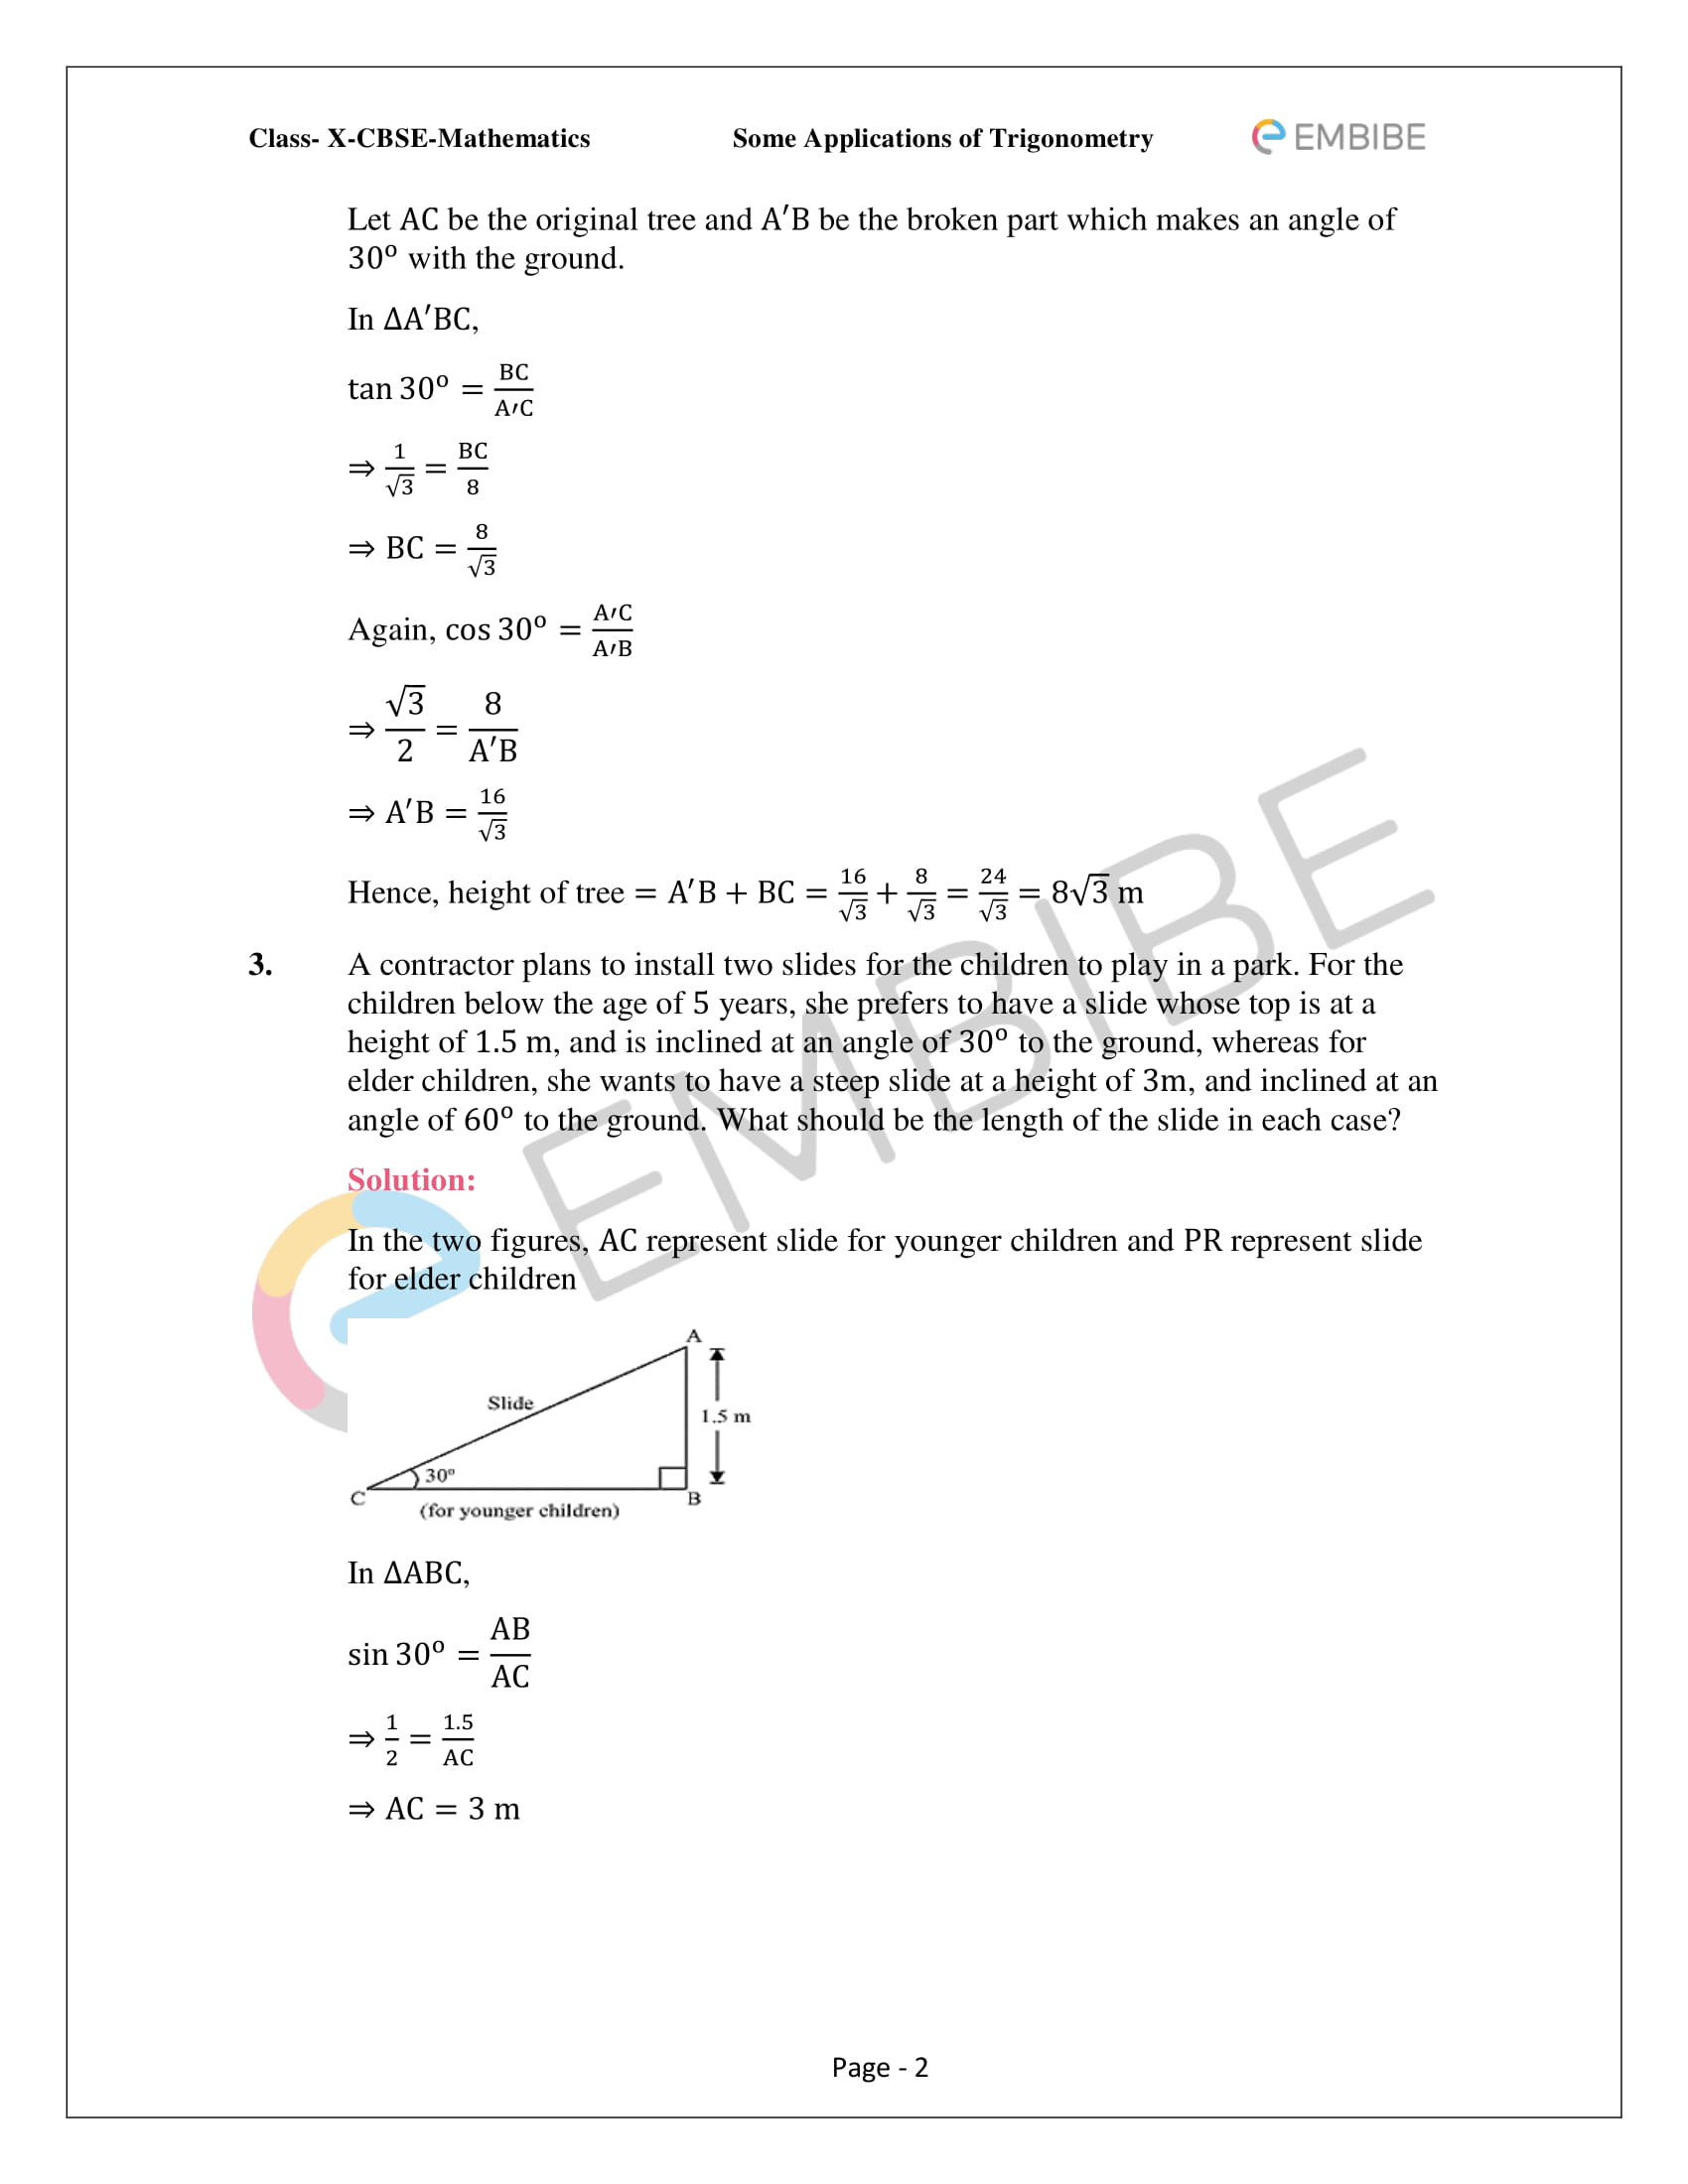 CBSE NCERT Solutions For Class 10 Maths Chapter 9 –Introduction To Trigonometry - 2